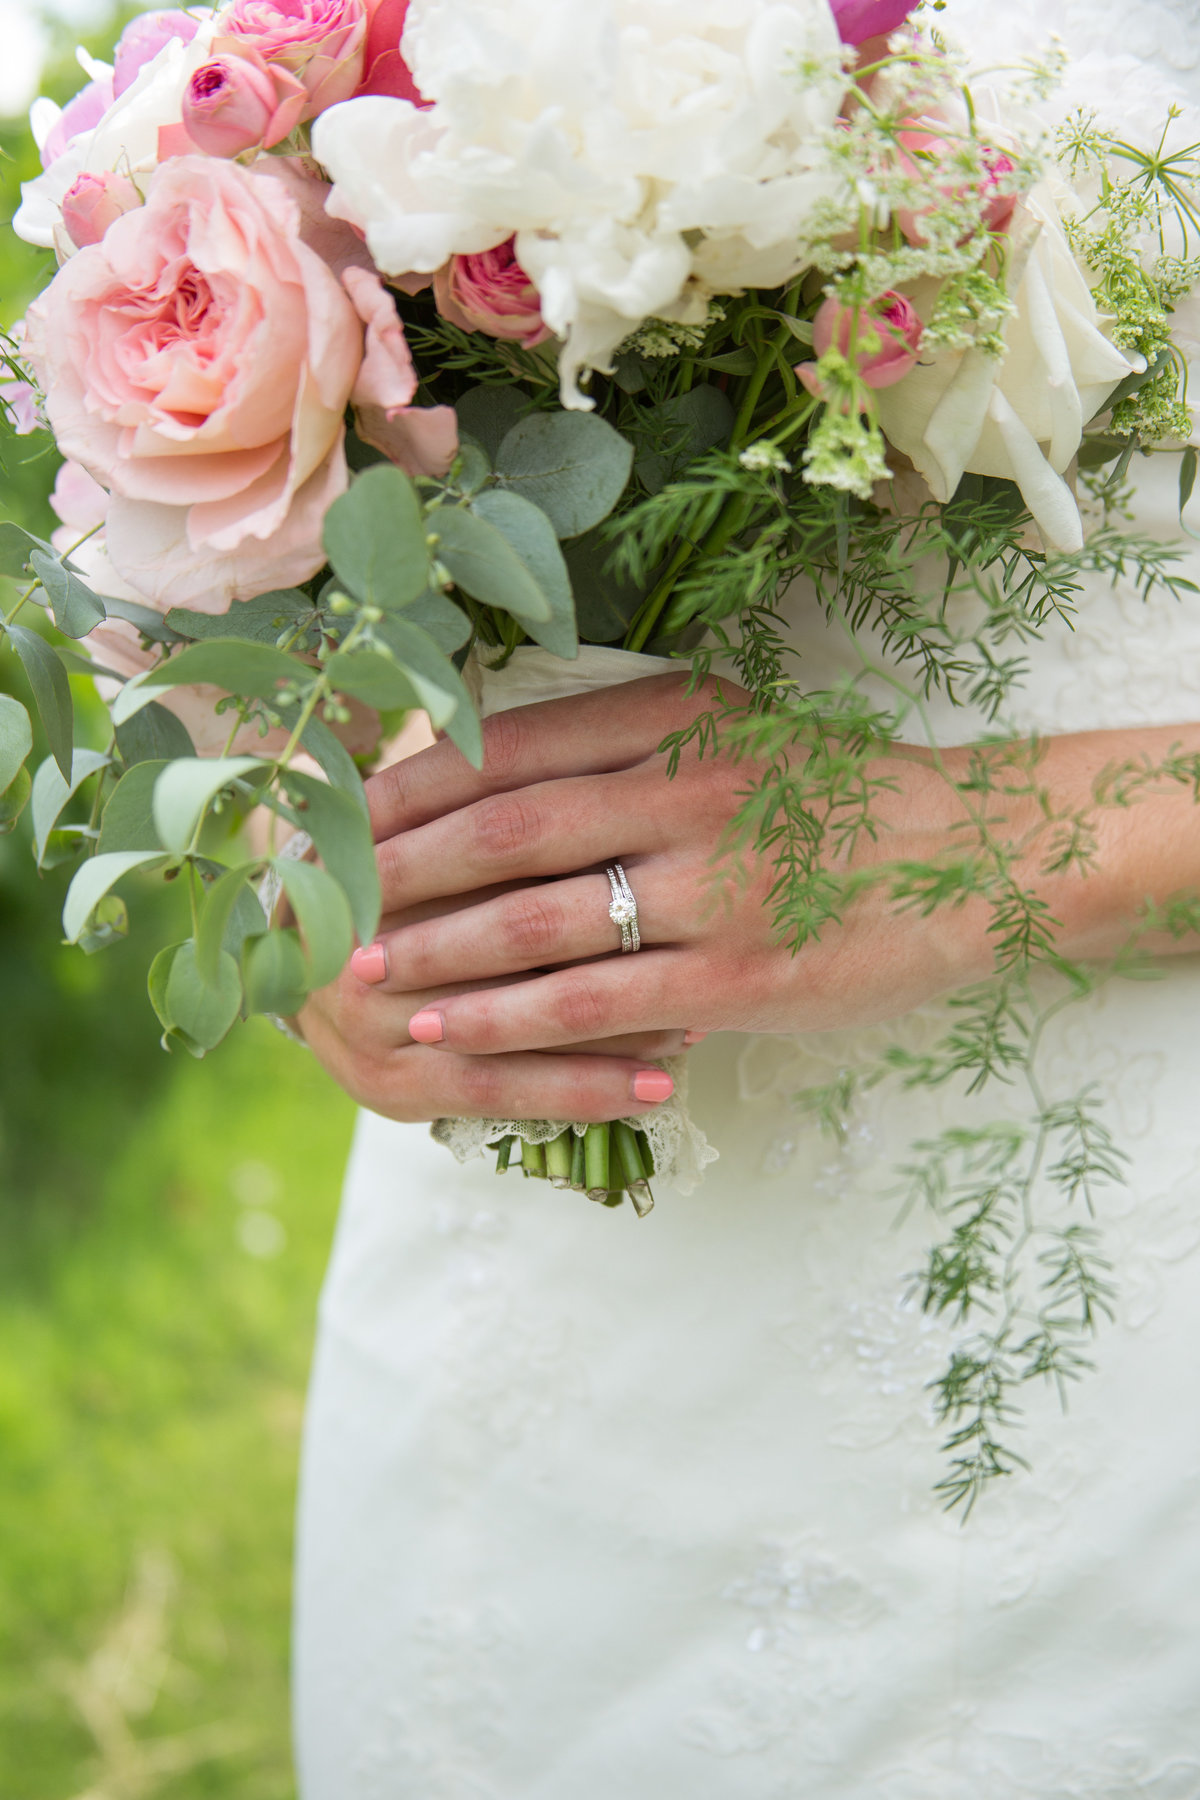 bouquet-wedding-ring-macro-shots-halley-lutz-wedding-photographer